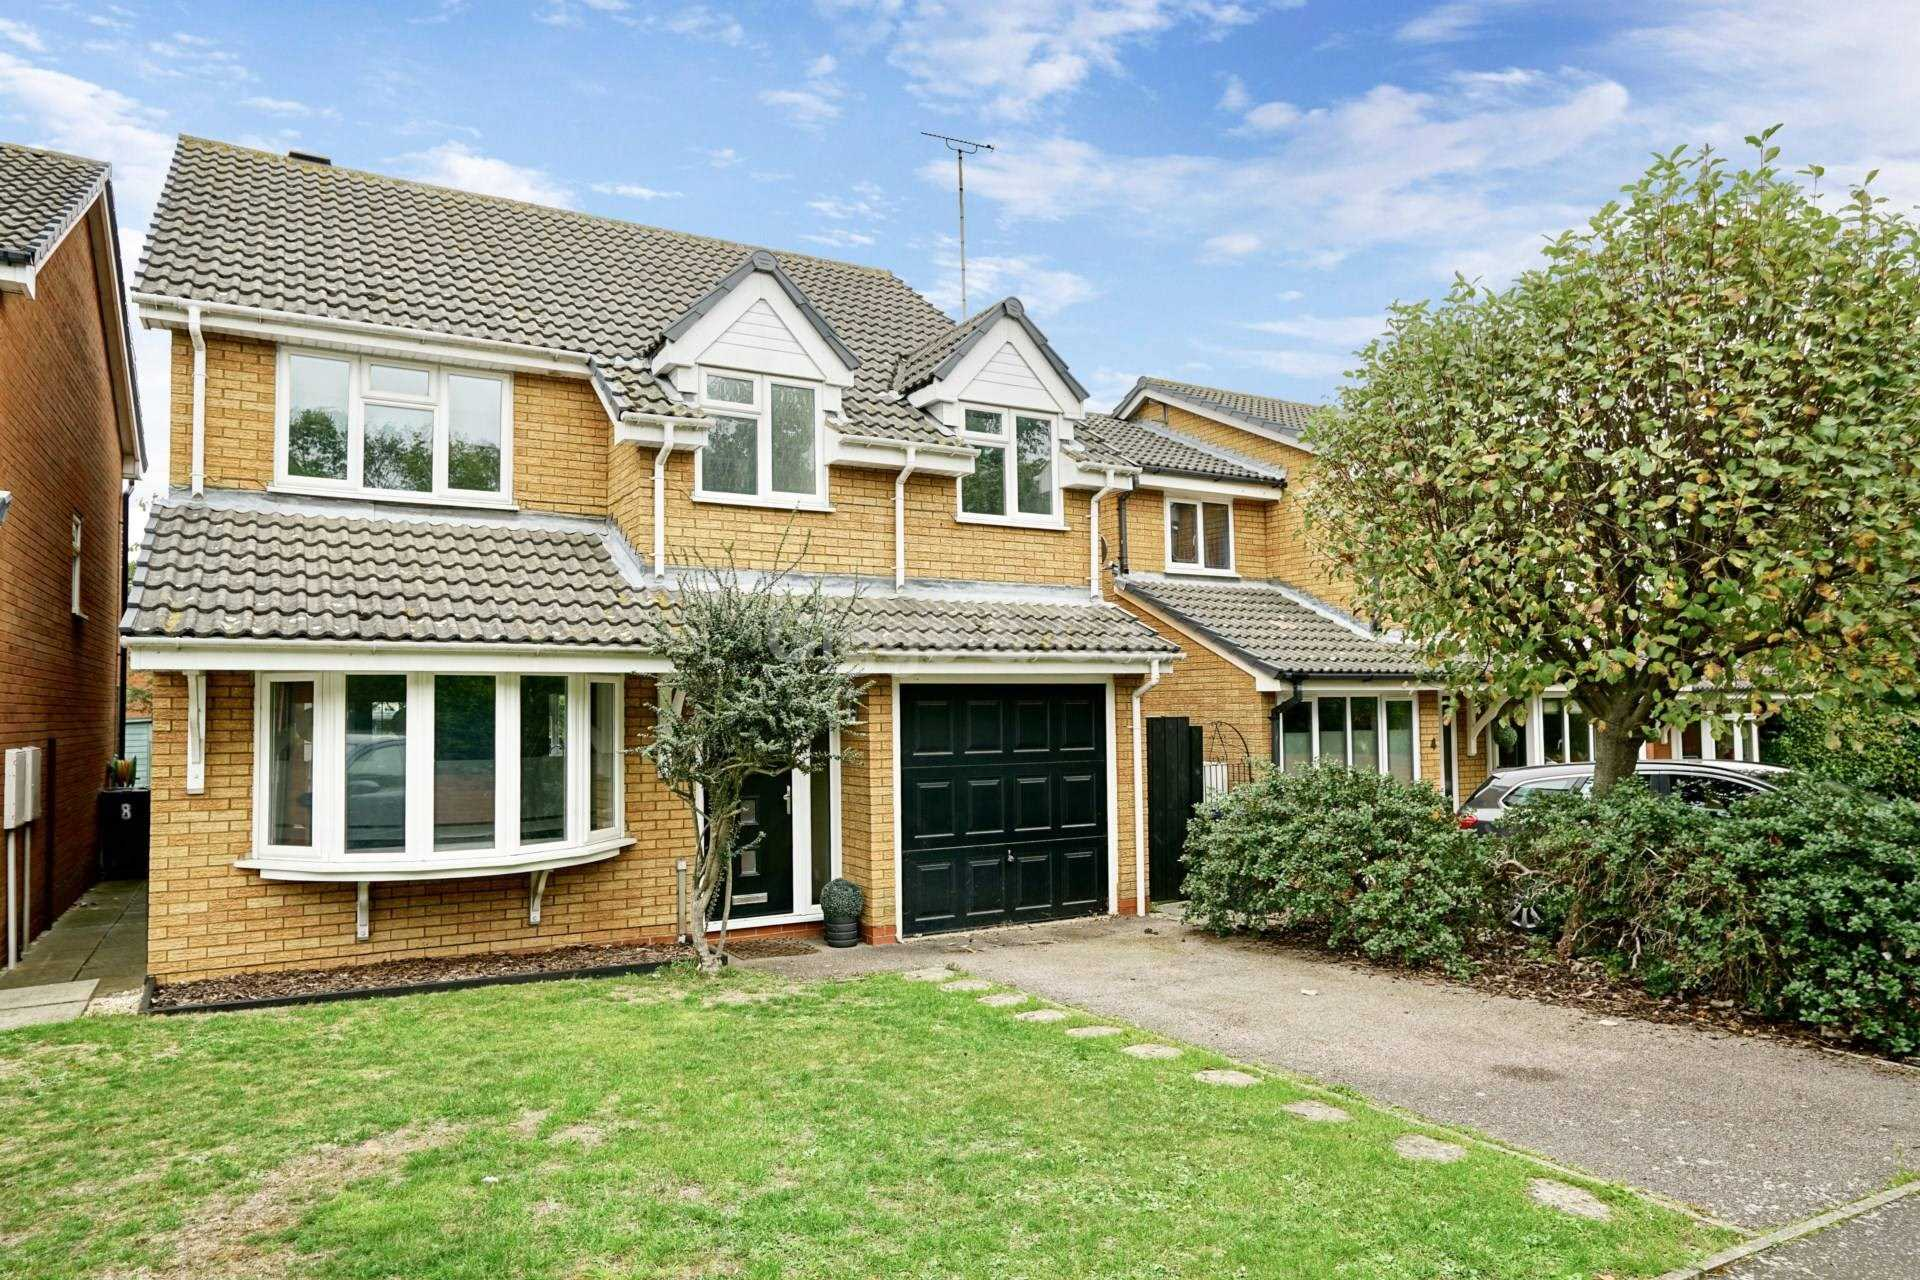 4 bed detached house to rent in Loweswater, Huntingdon, PE29